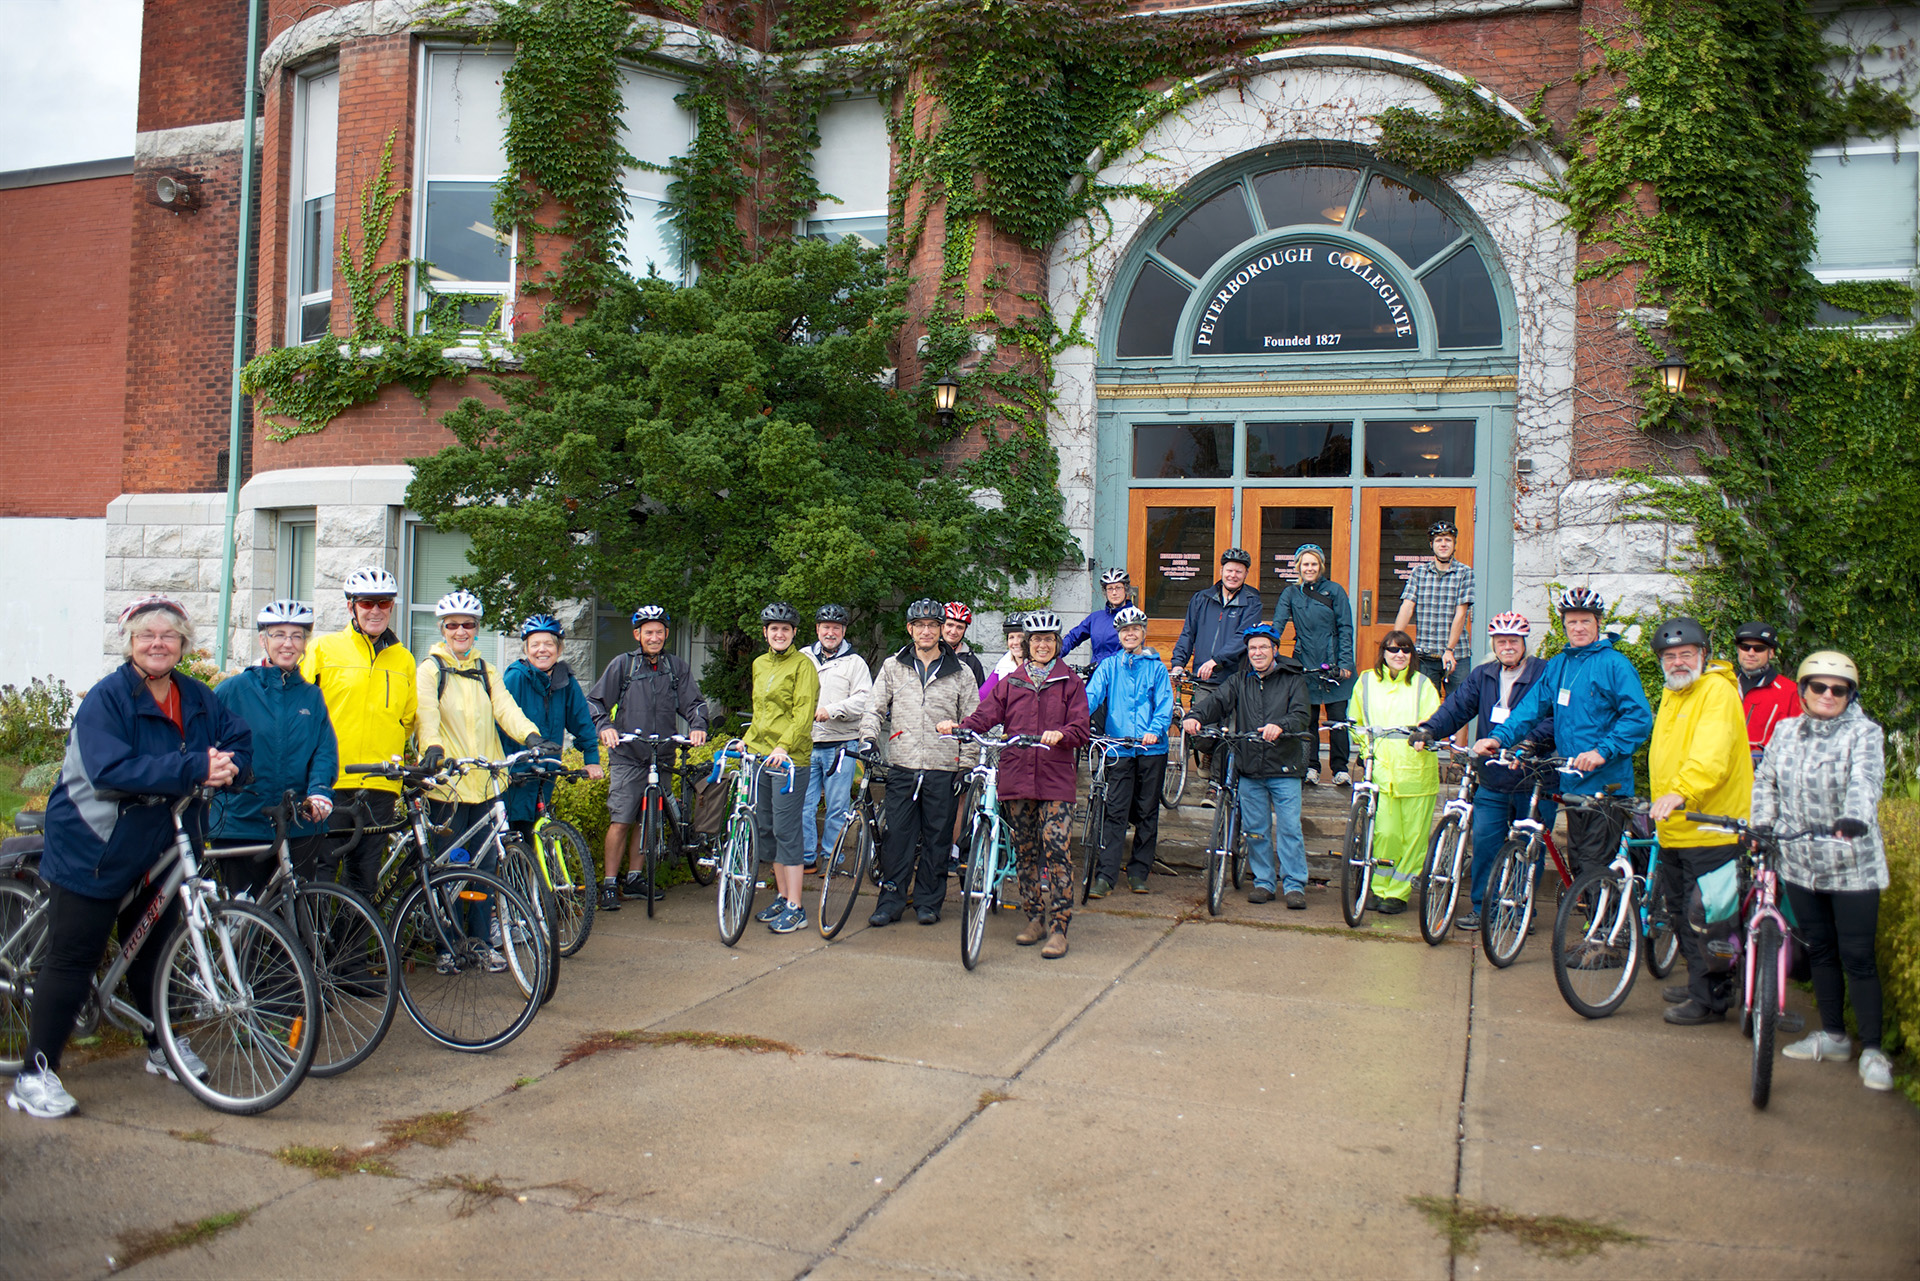 MORNING CYCLING TOUR GROUPS